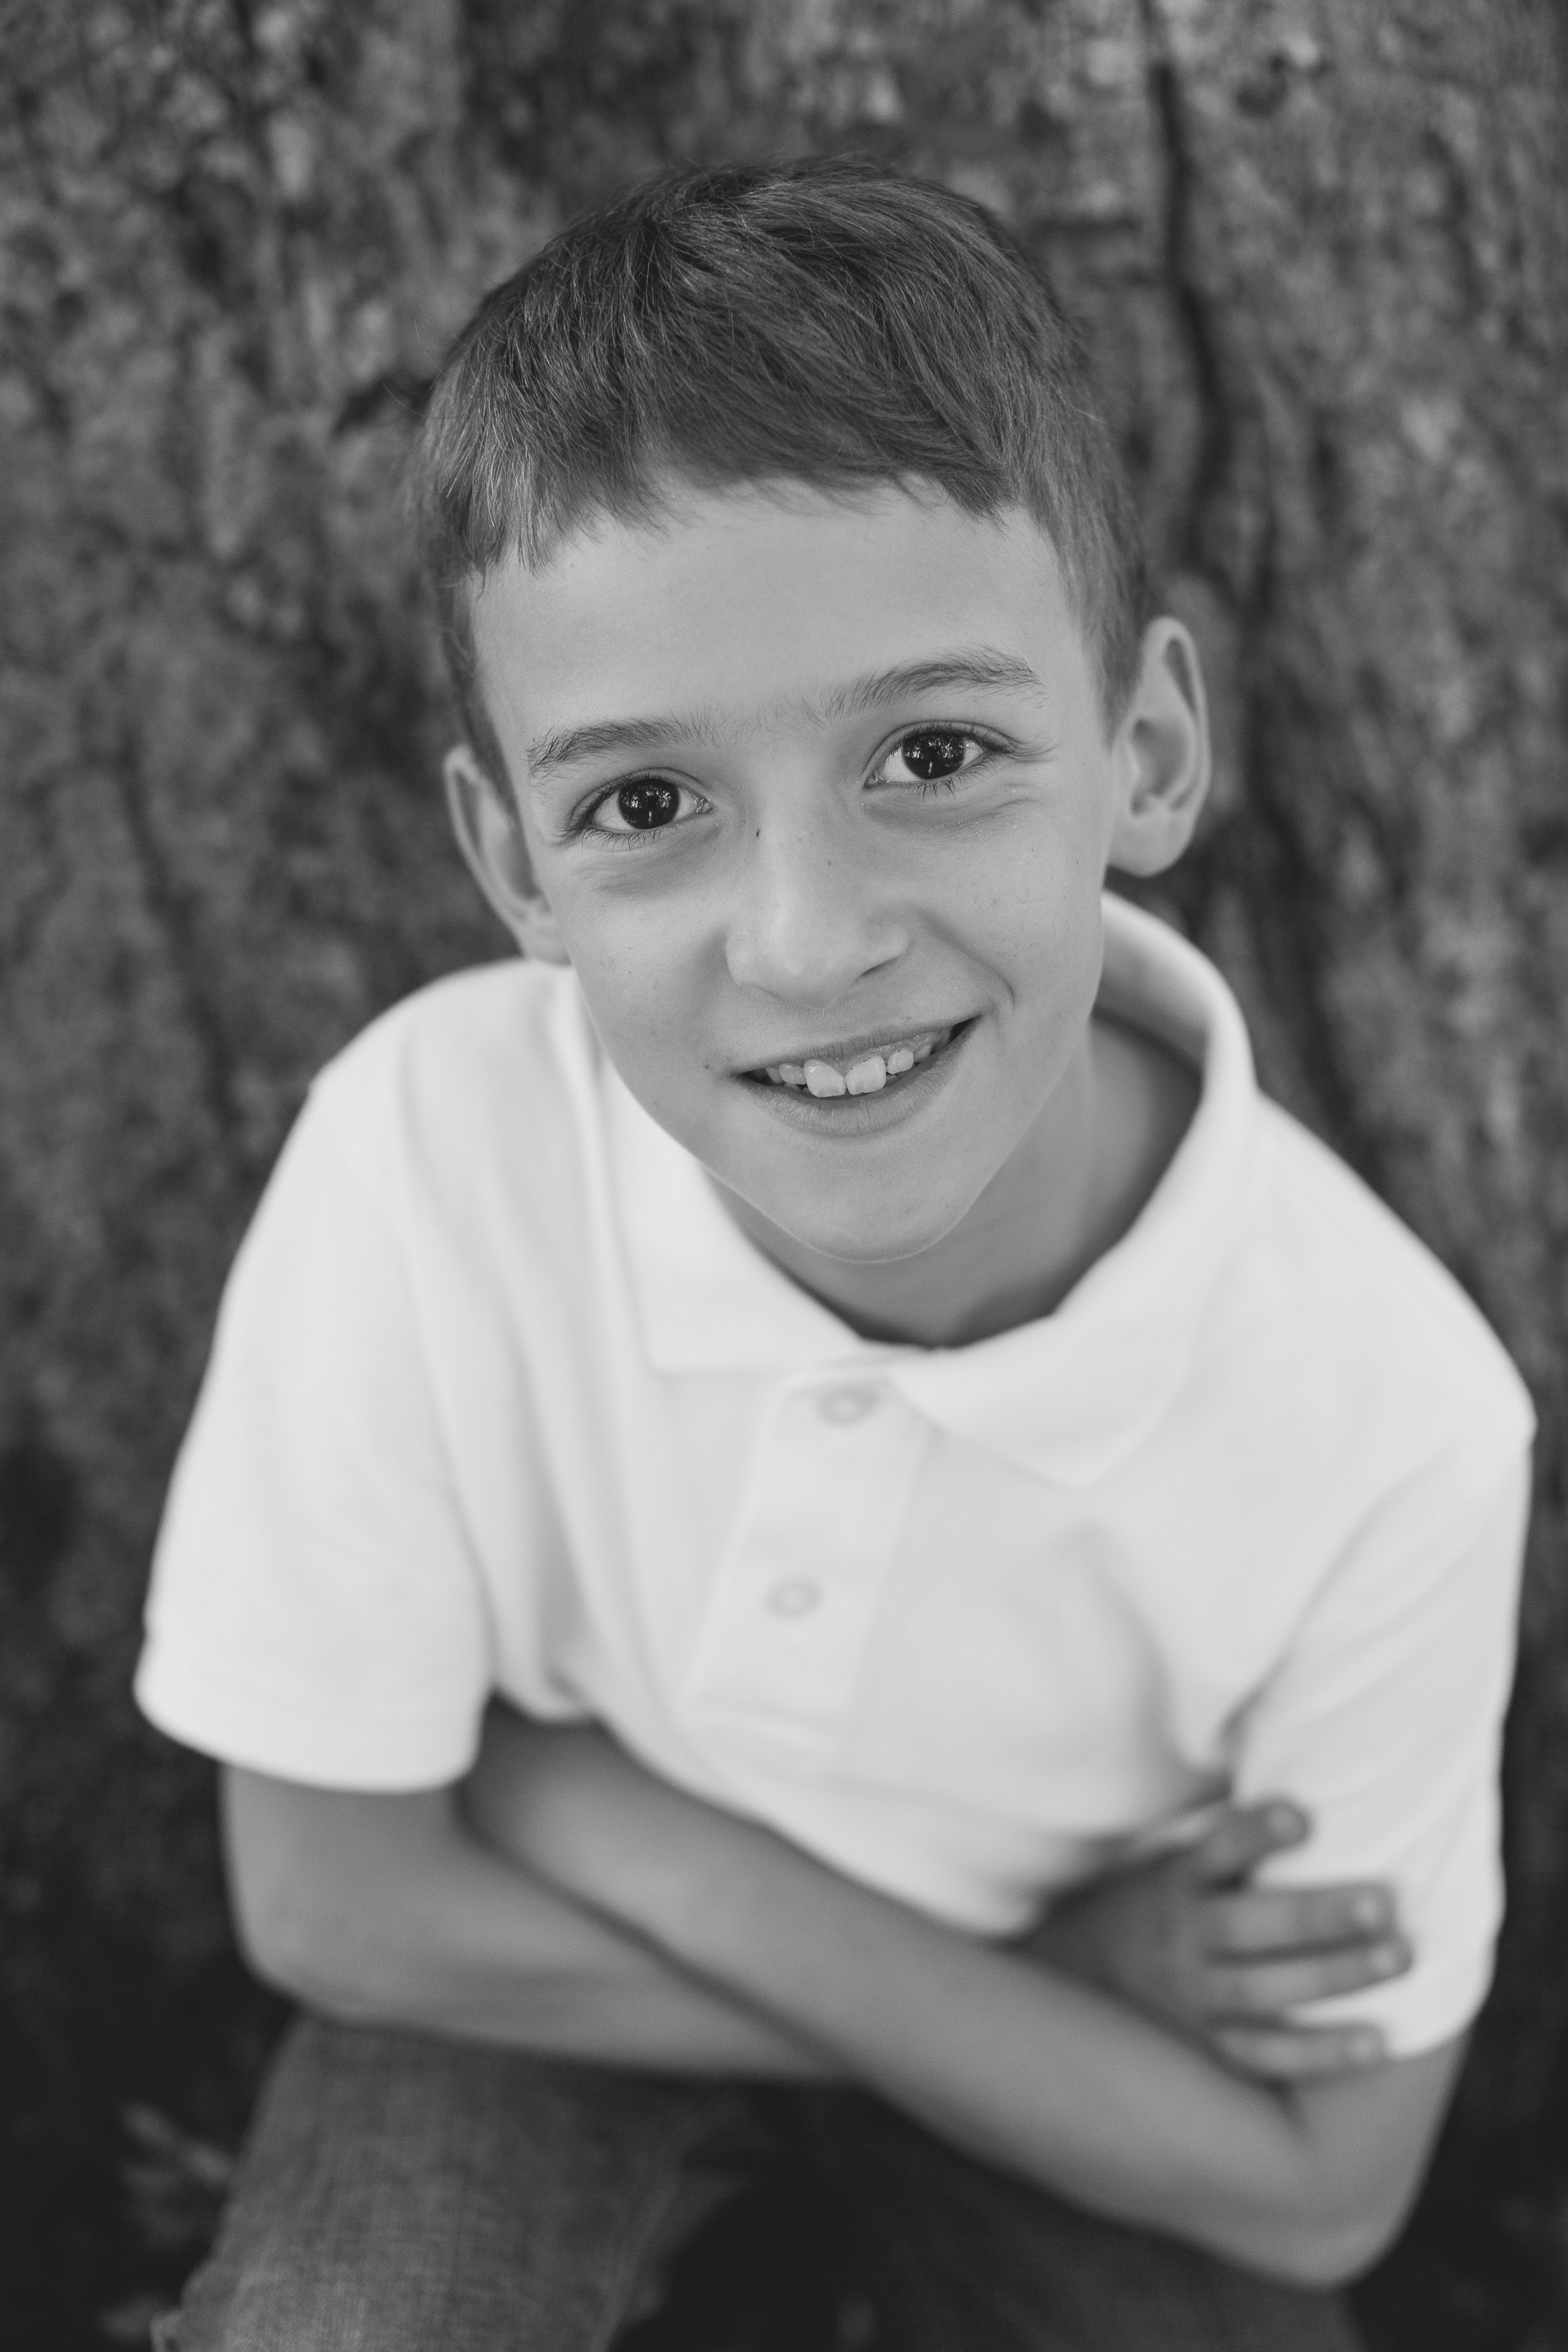 murtagh-family-portrait-photography-indianapolis-32